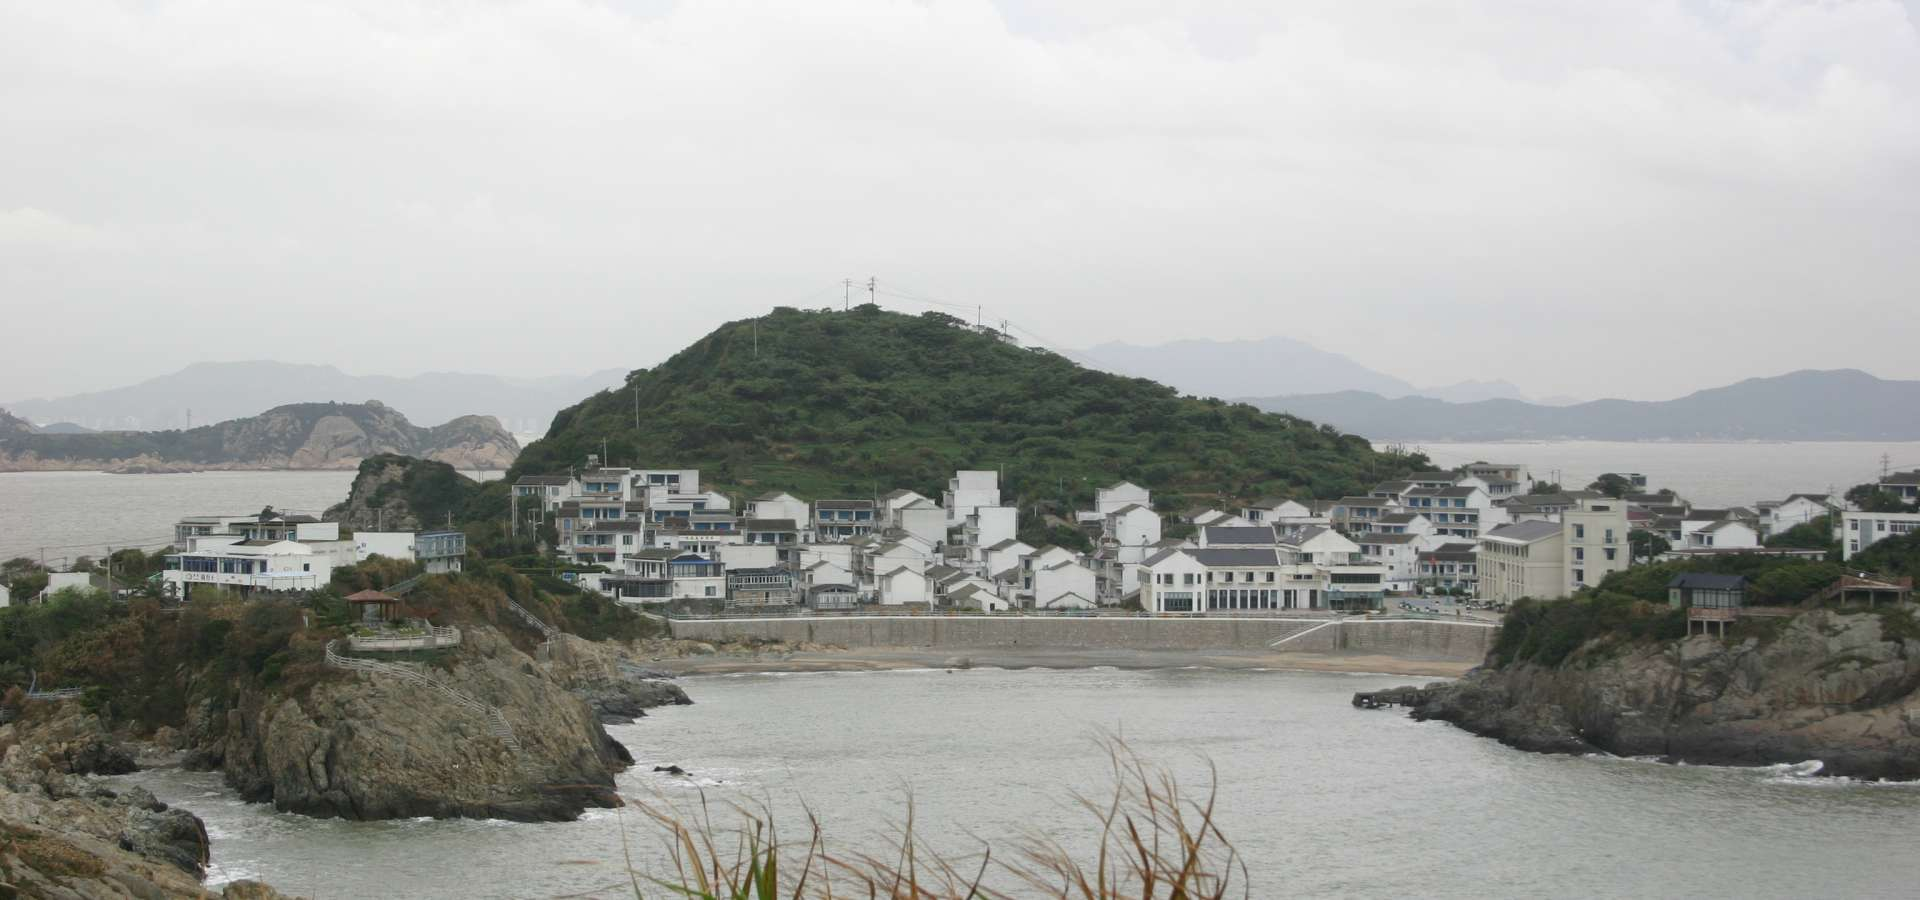 Baisha Island - The West Coast Town in China